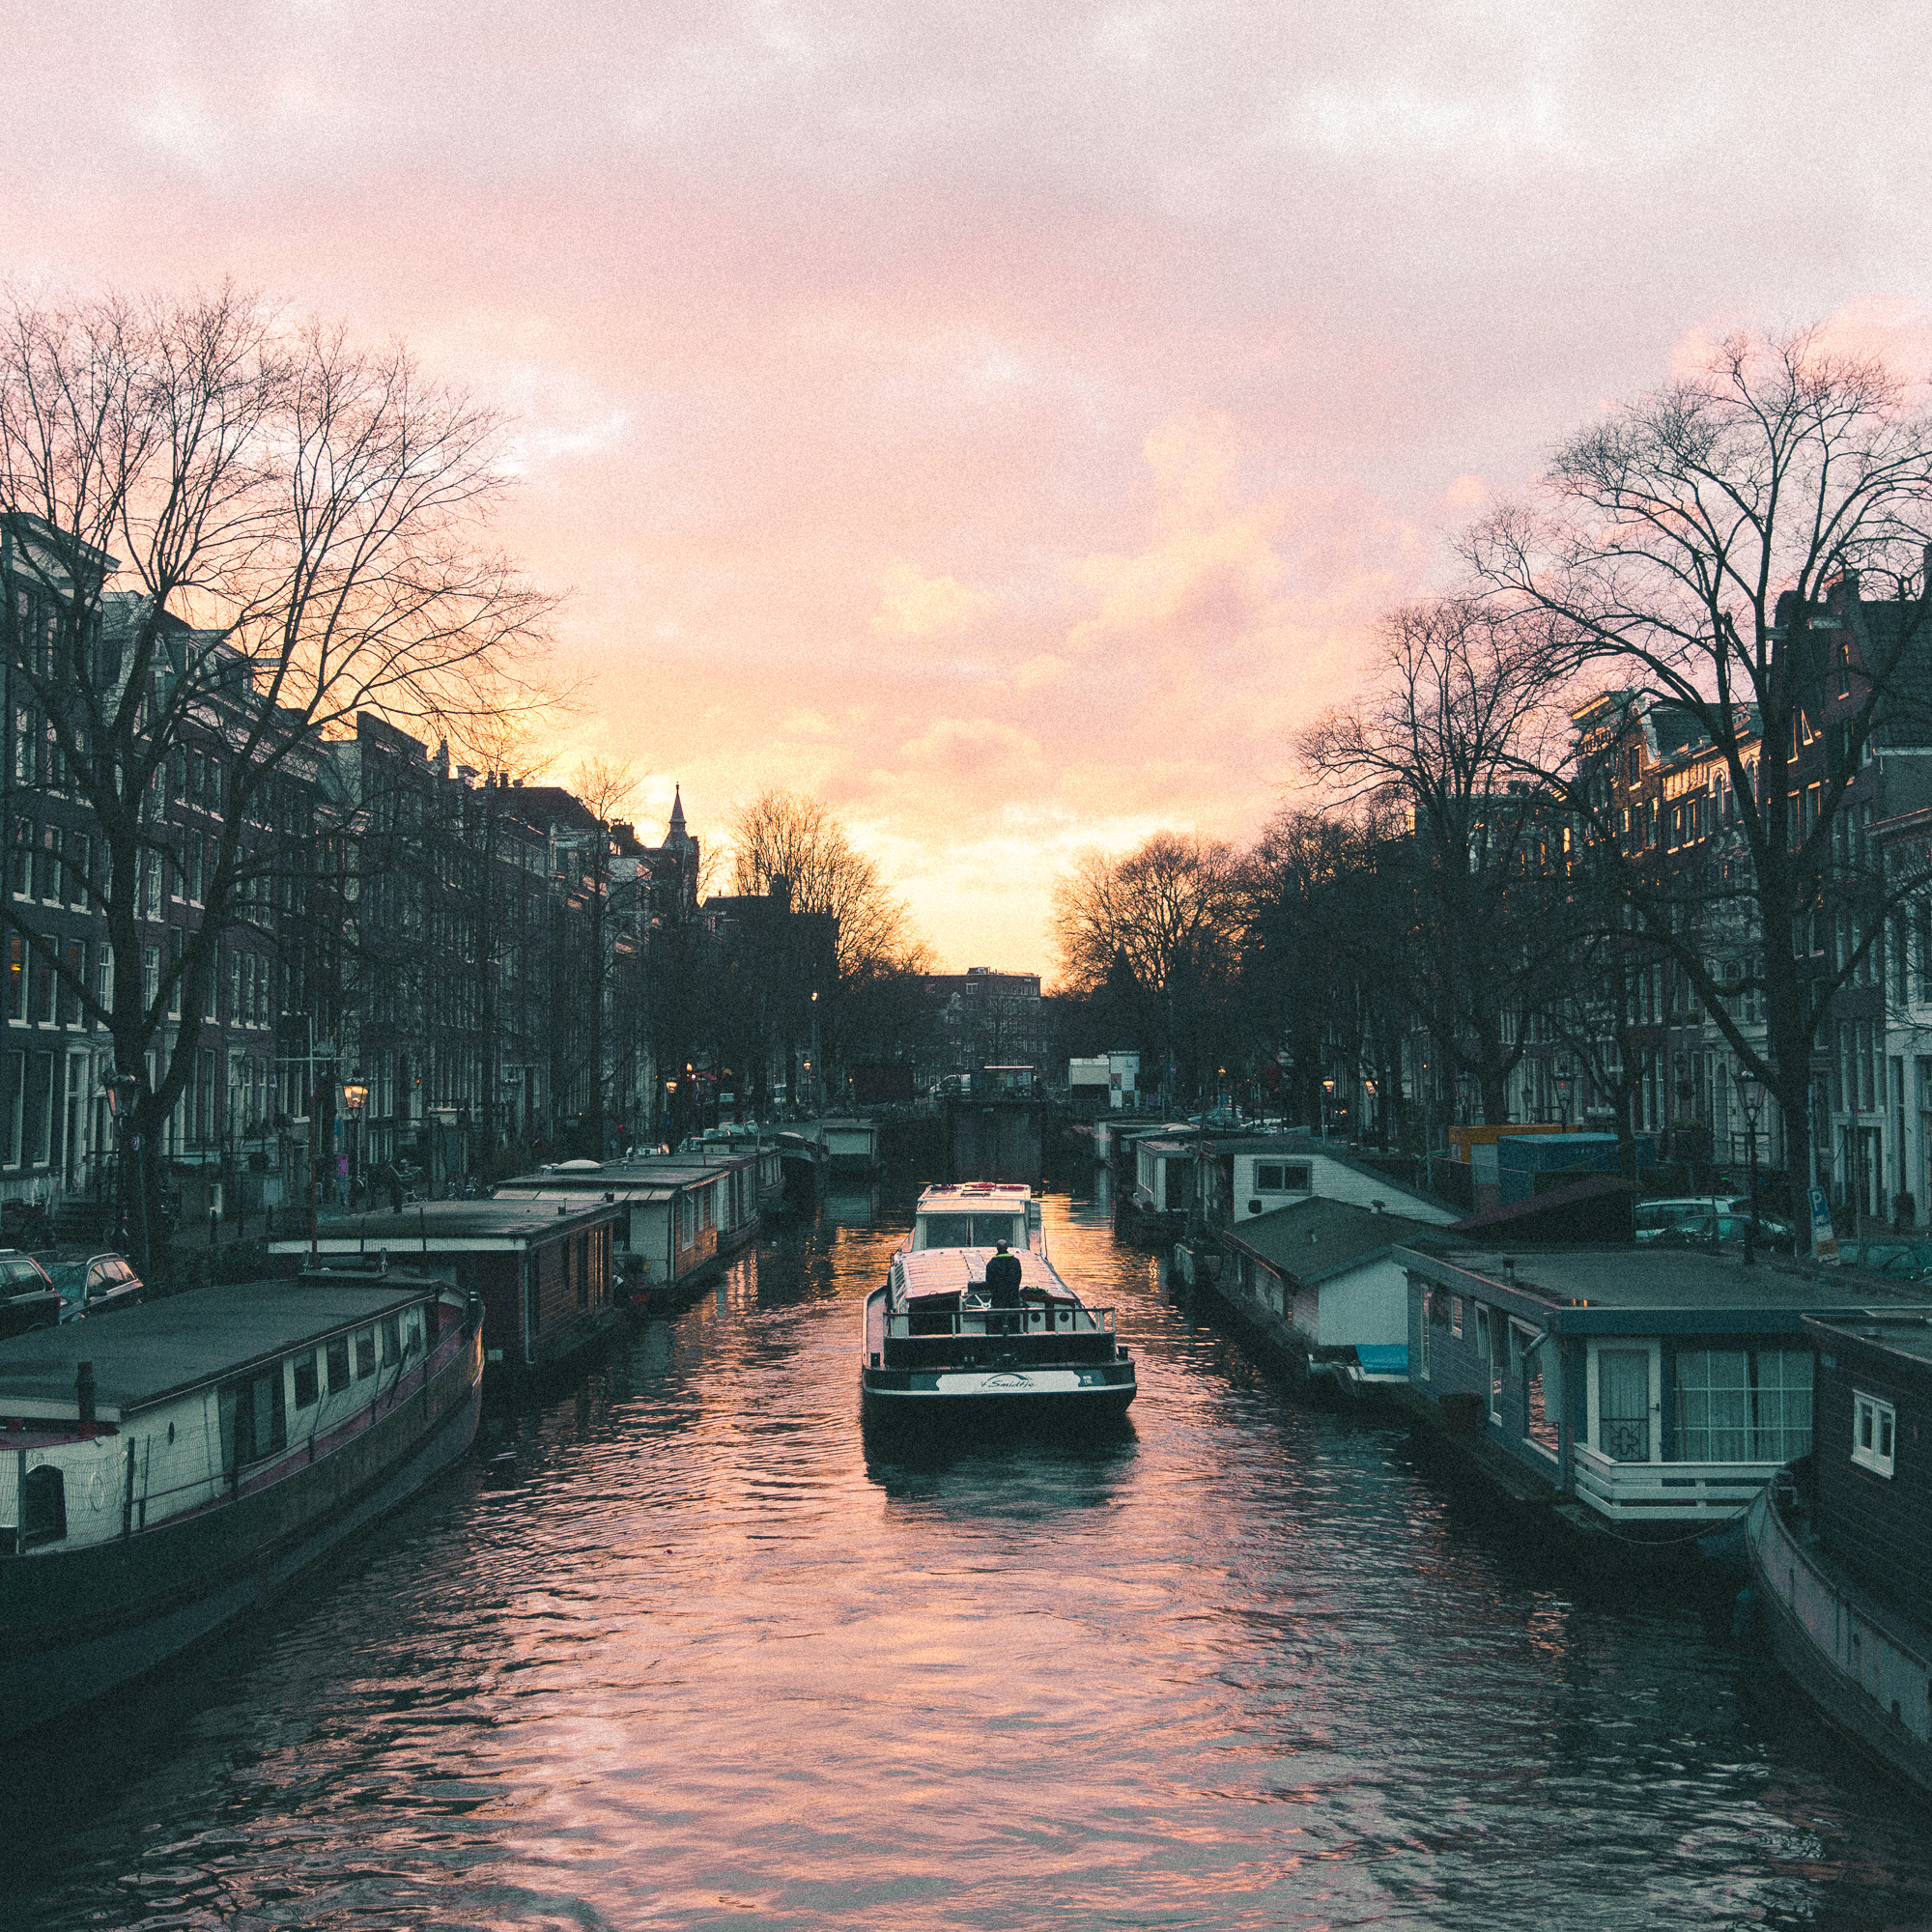 boating amsterdam's canals at sunset